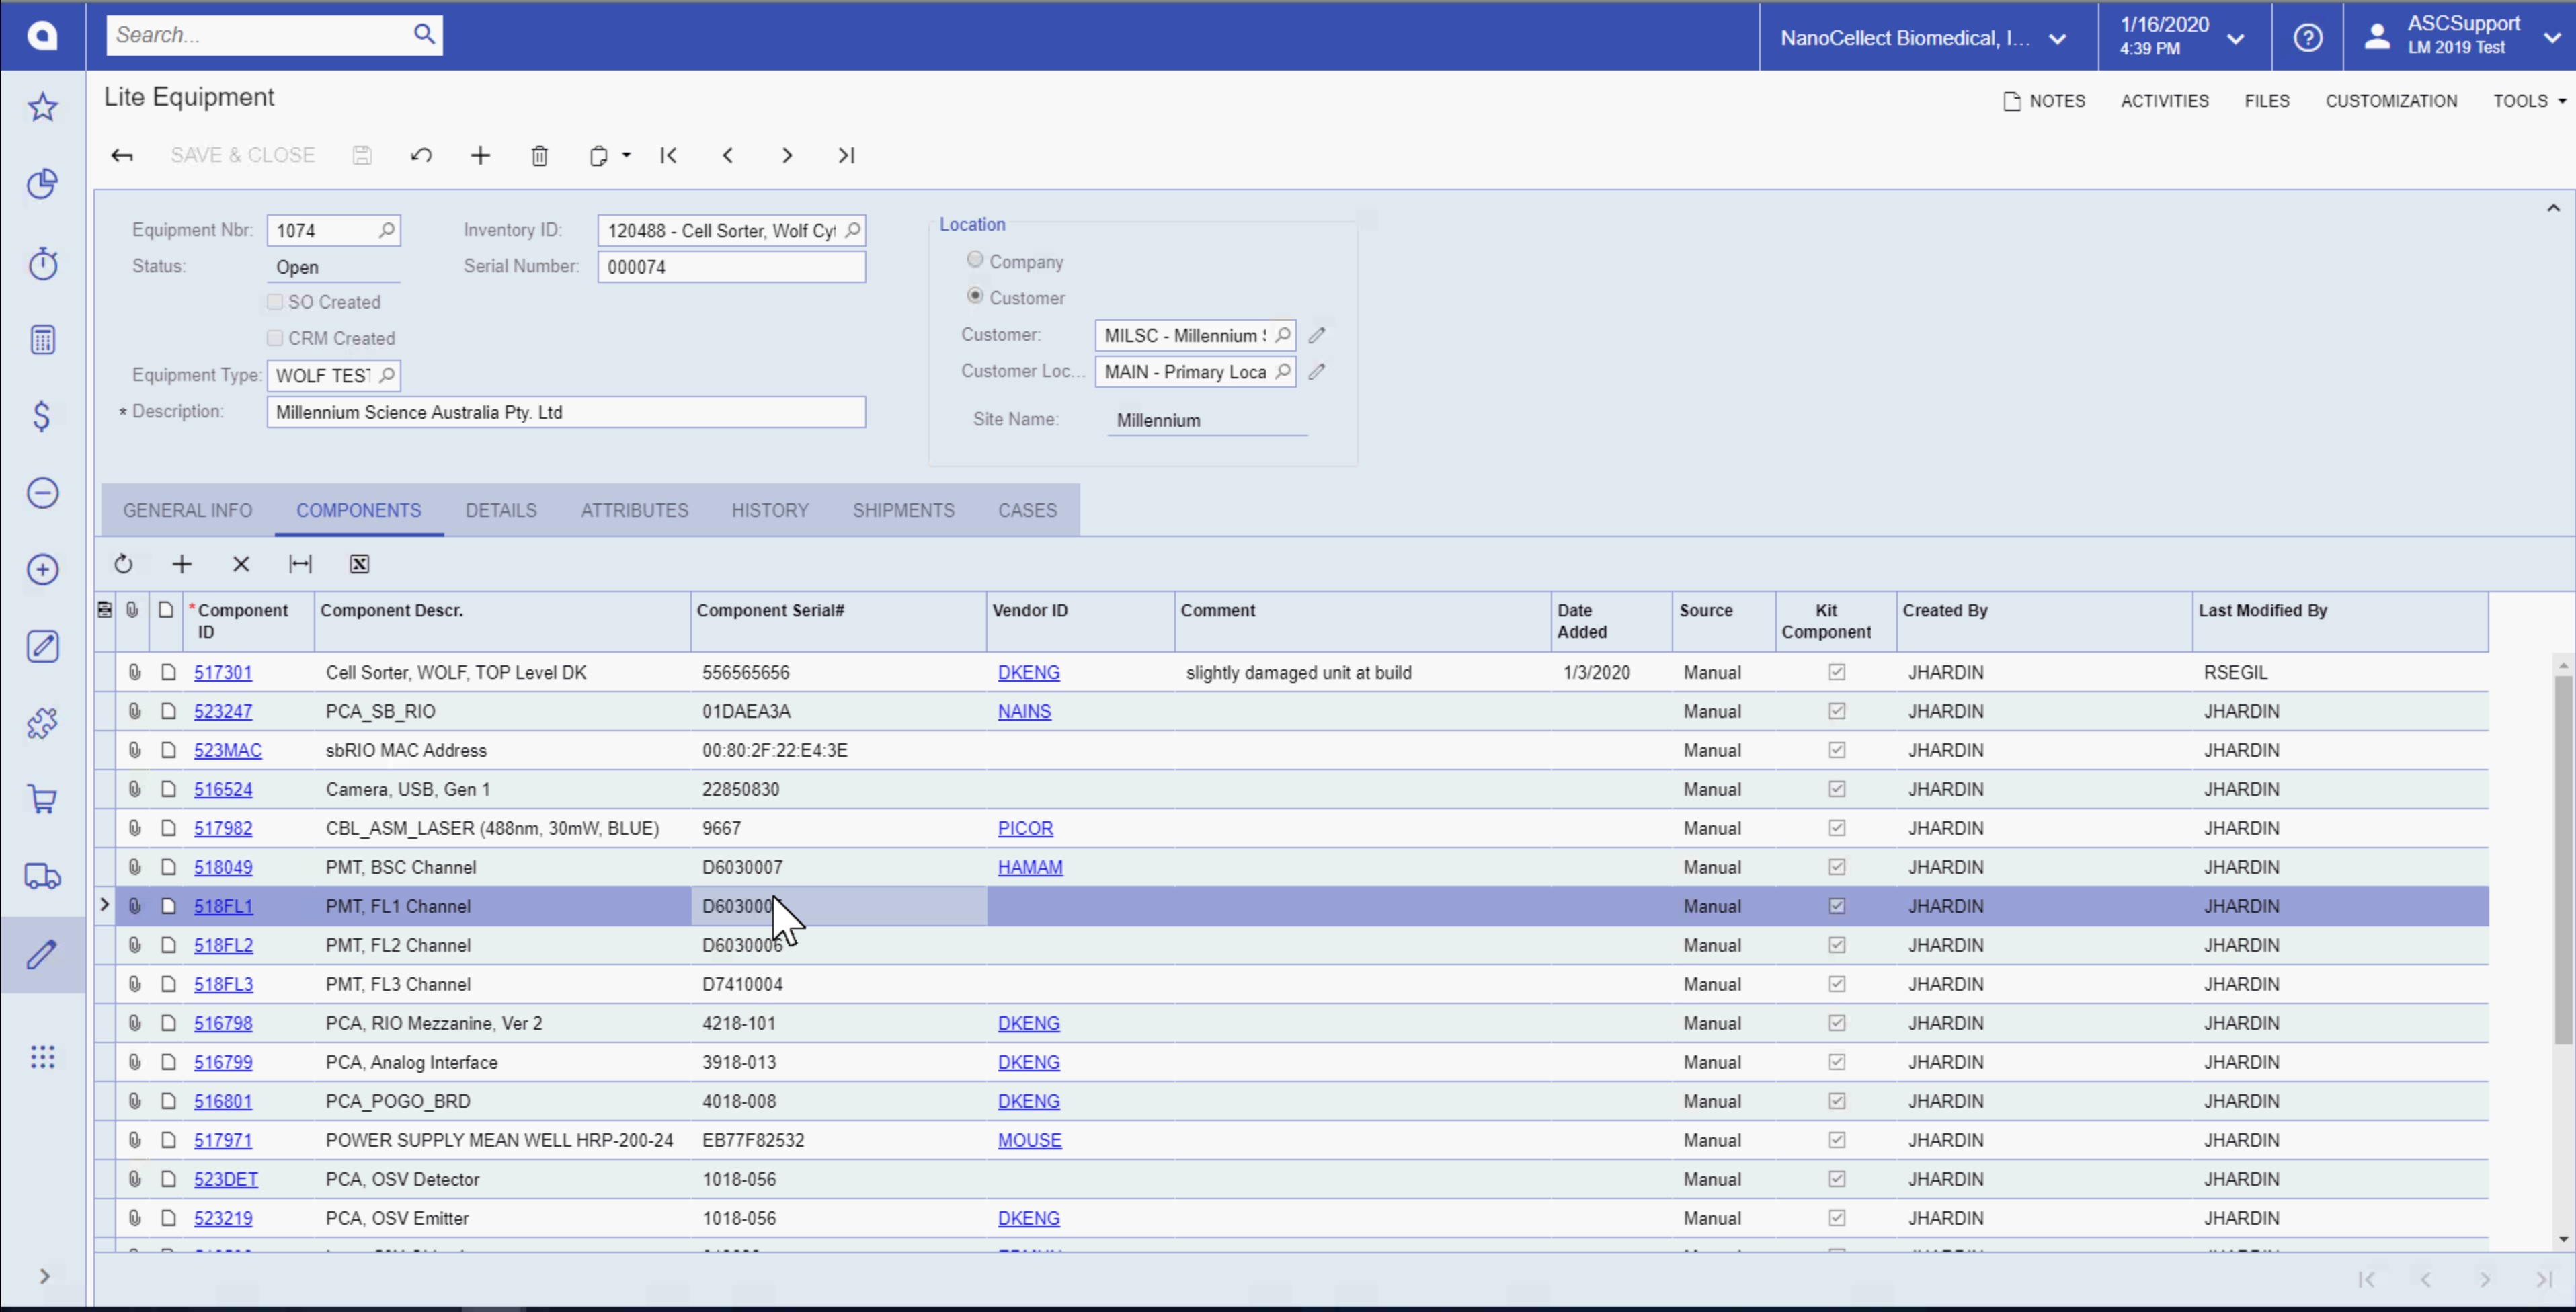 Track all Components' History